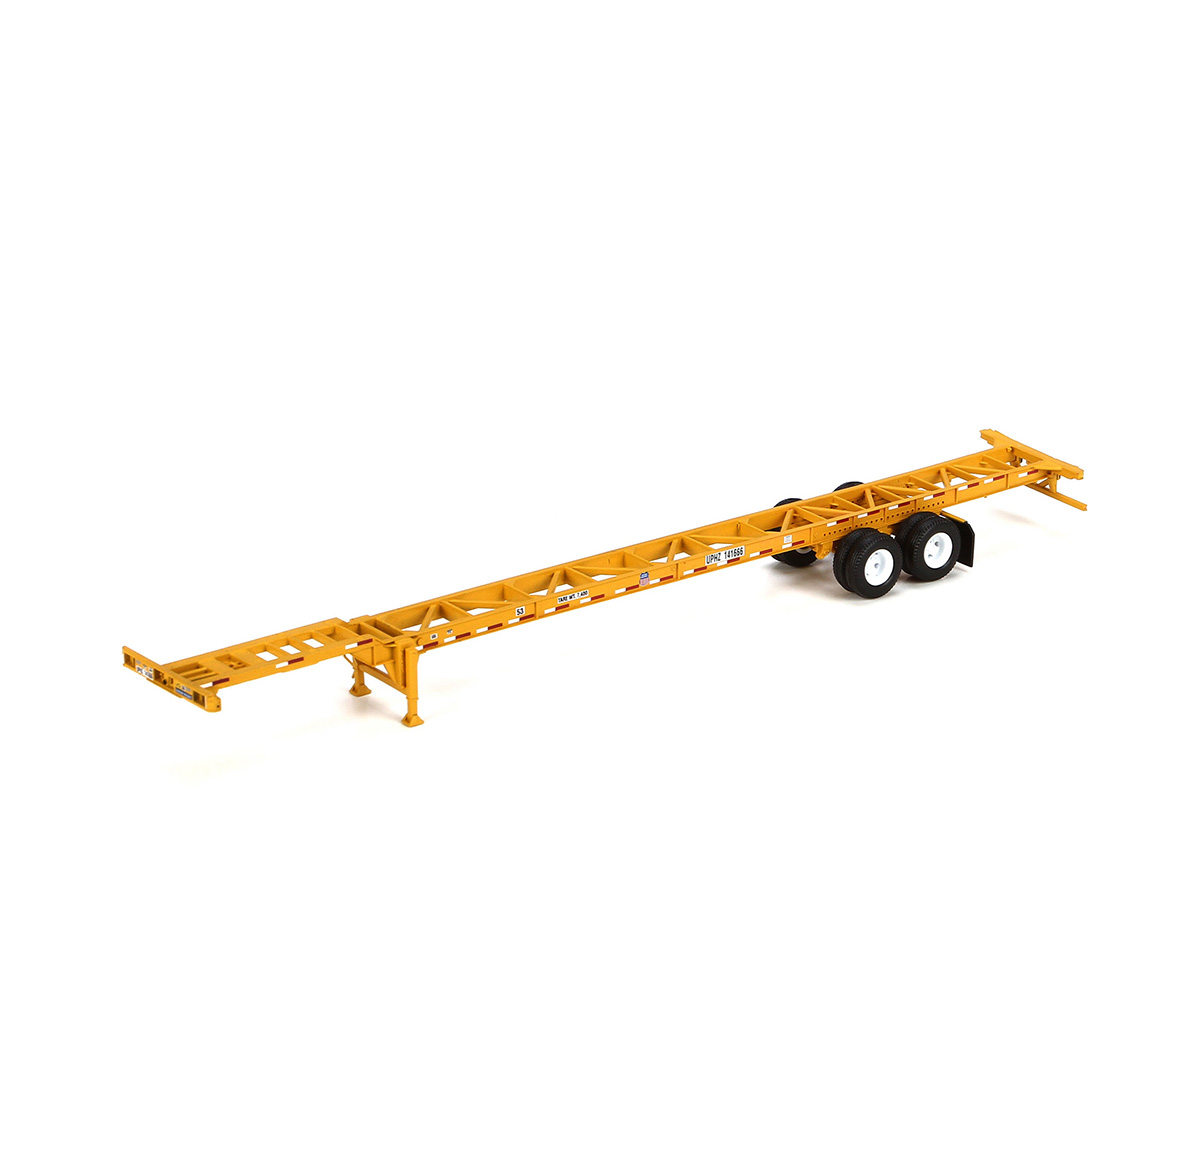 Athearn Ready To Roll ATH26595 HO 53' Container Chassis 2 Pack, UP